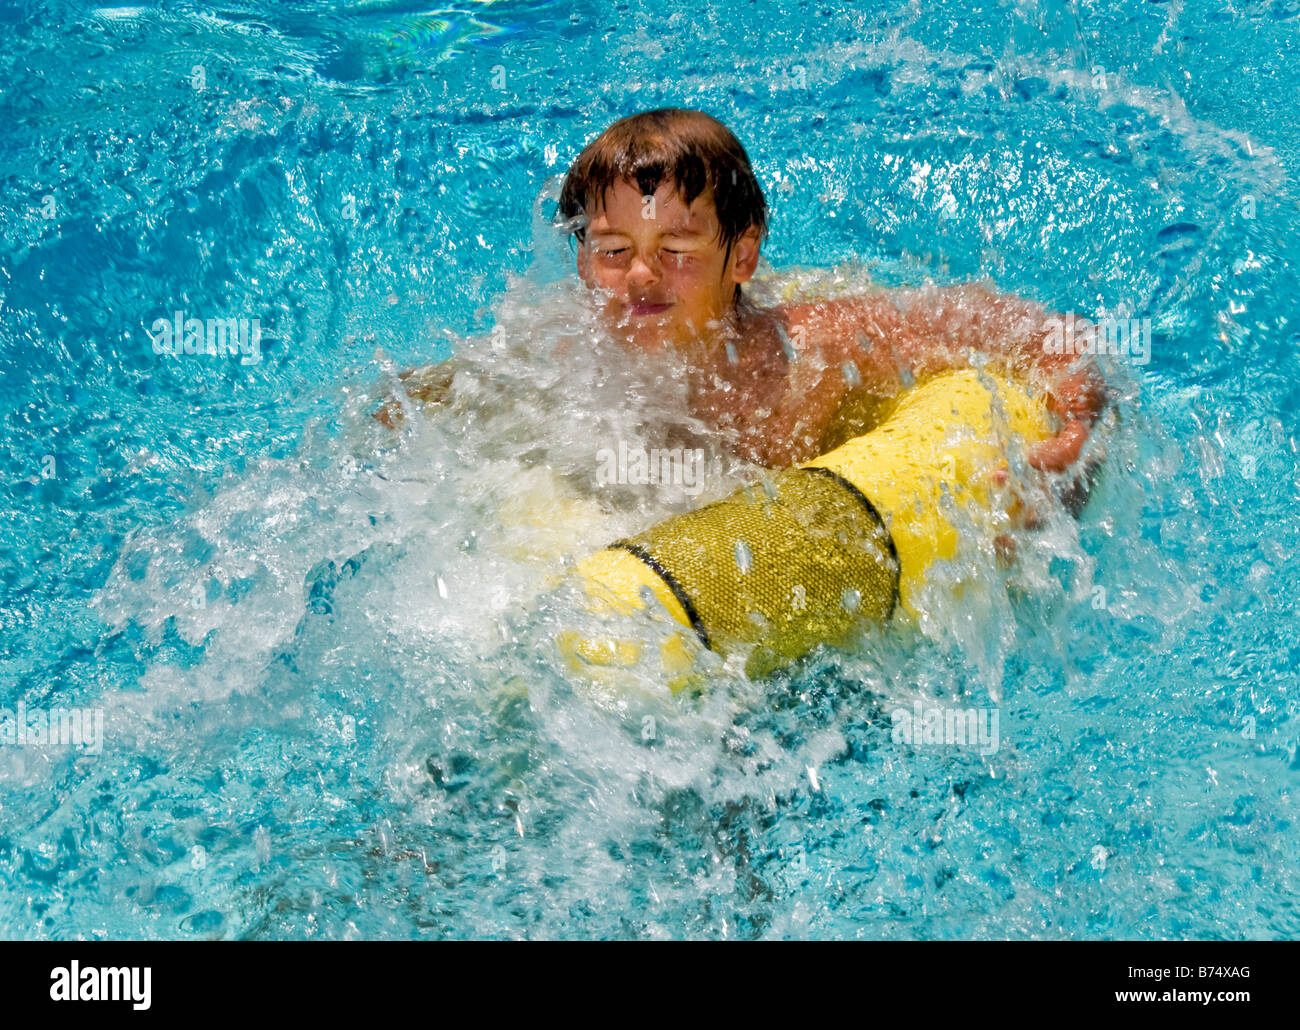 Grimacing A 10 Year Old Boy Splashes Into A Swimming Pool In Laguna Stock Photo Royalty Free